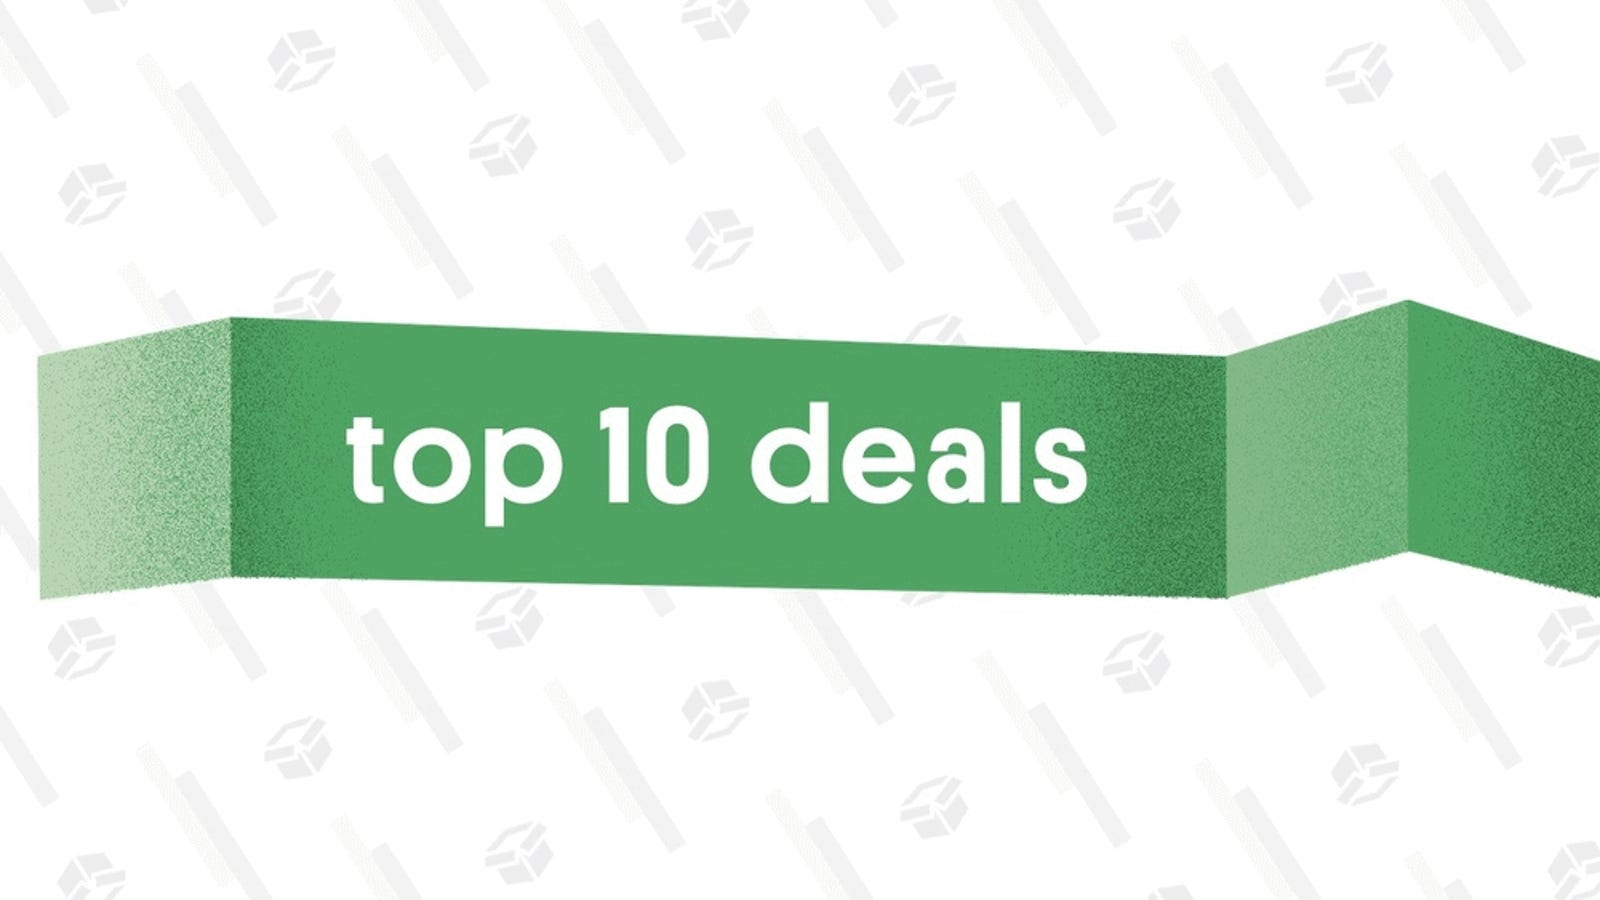 The 10 Best Deals for June 13, 2018